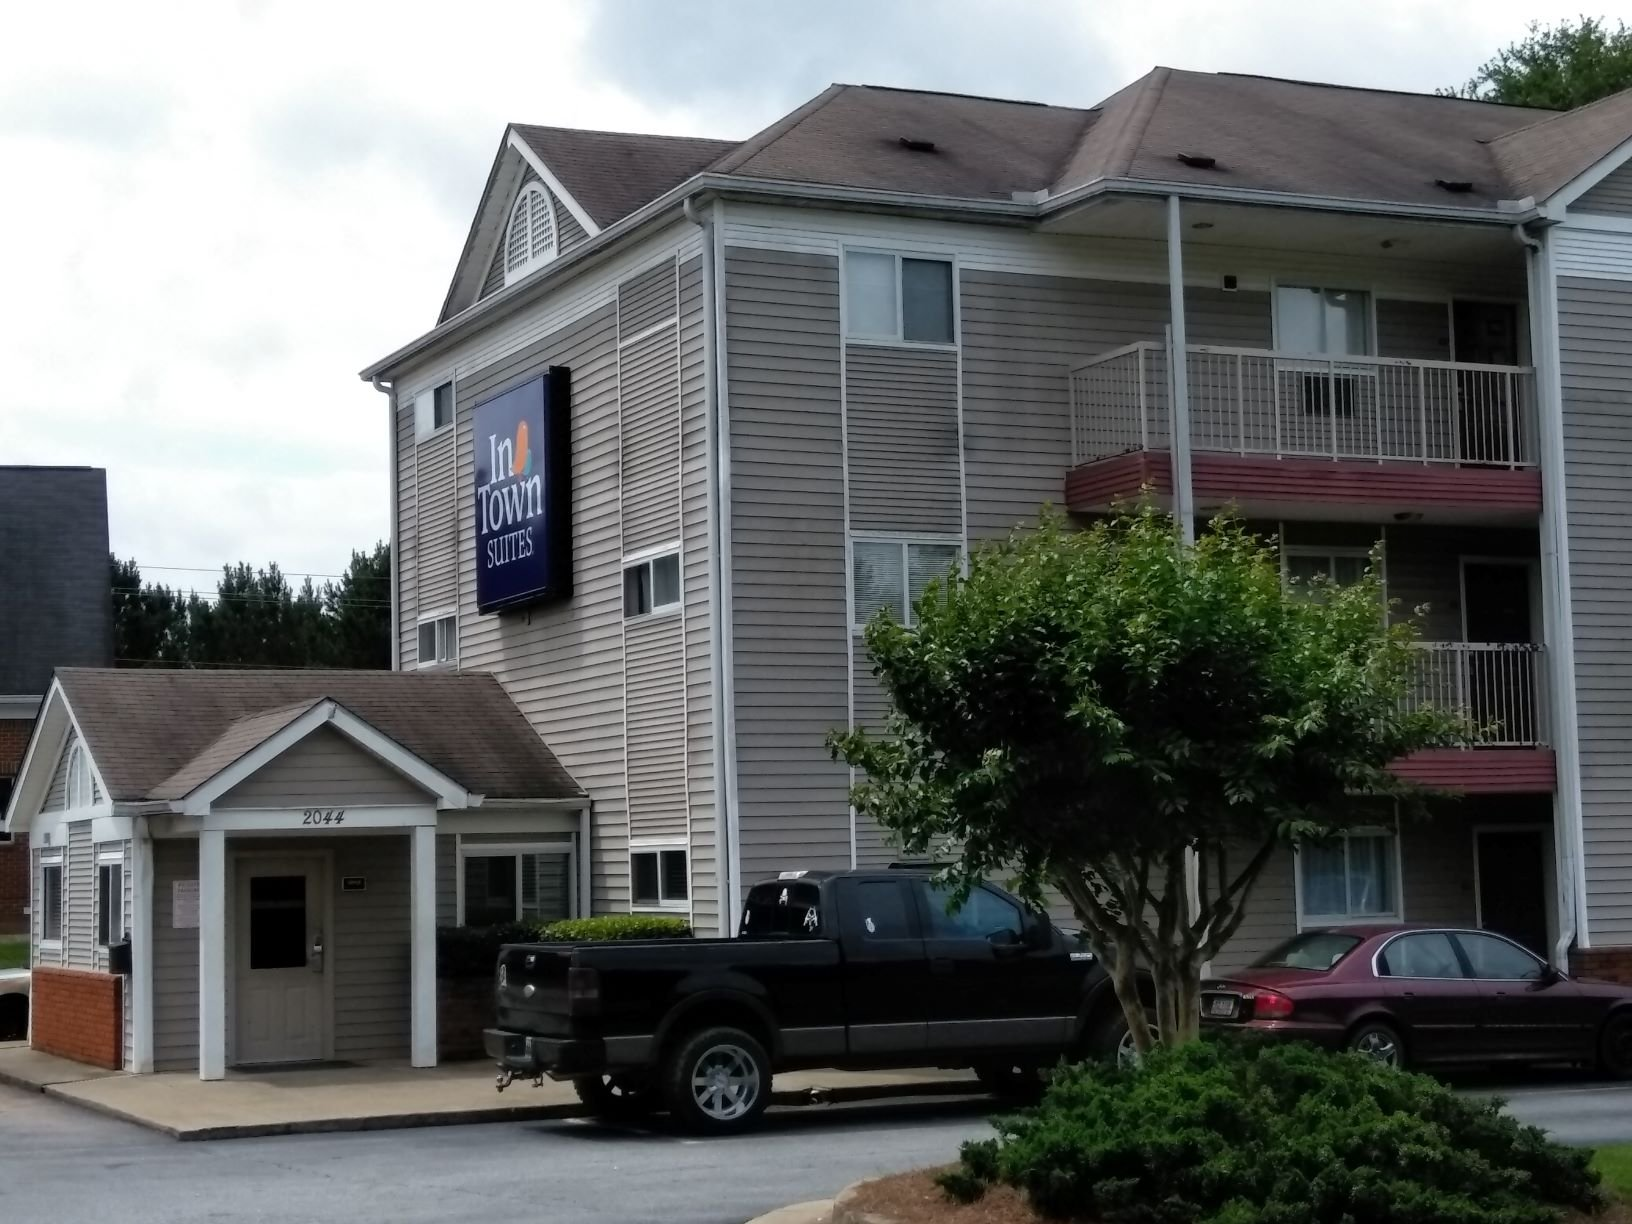 InTown Suites Extended Stay Warner Robins GA